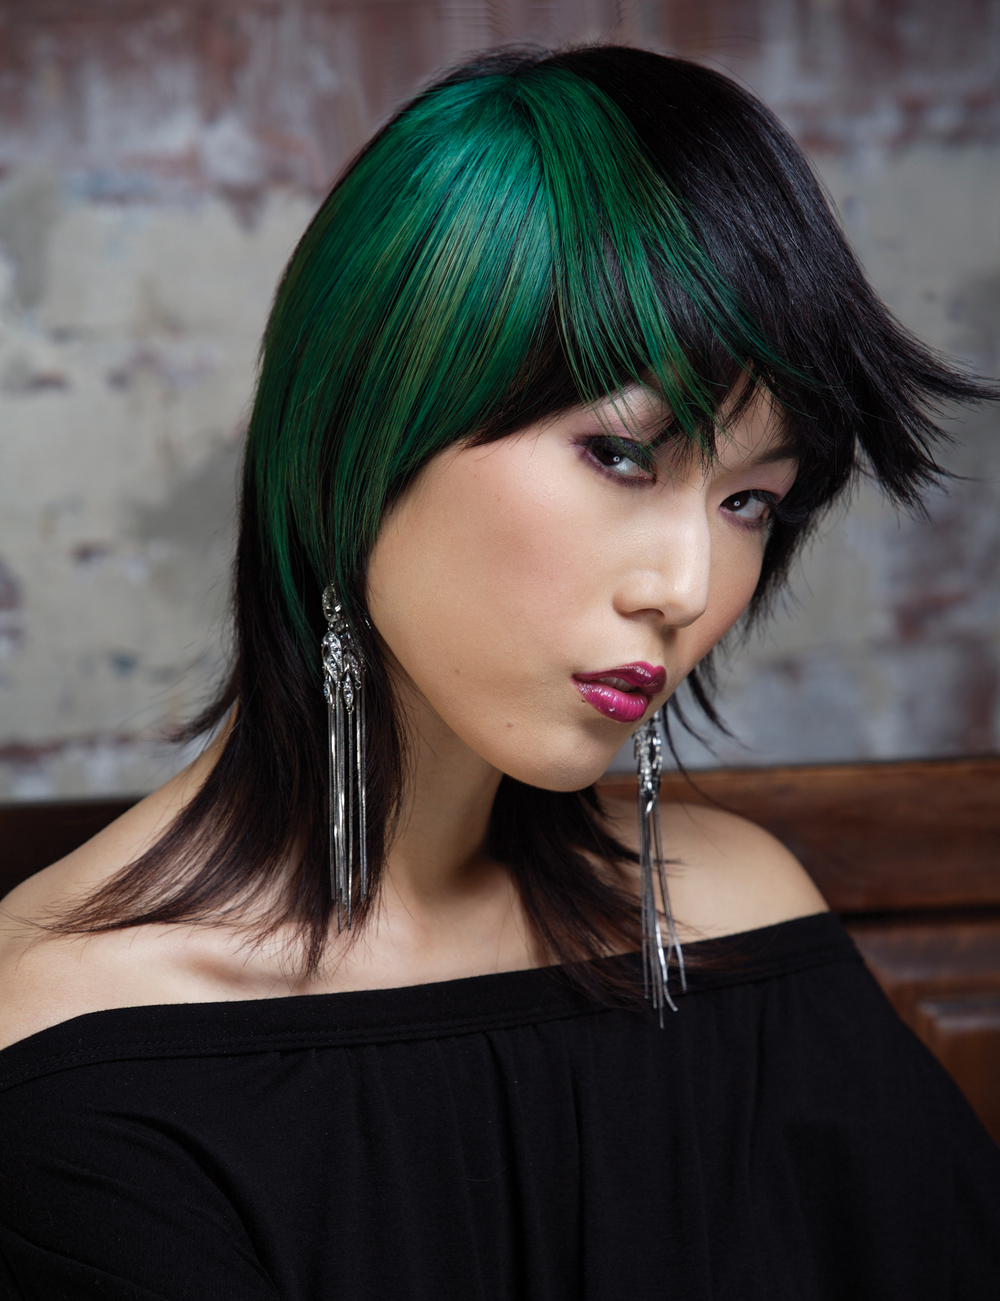 Lawrence picture - green hair - edit fly aways v2.jpg